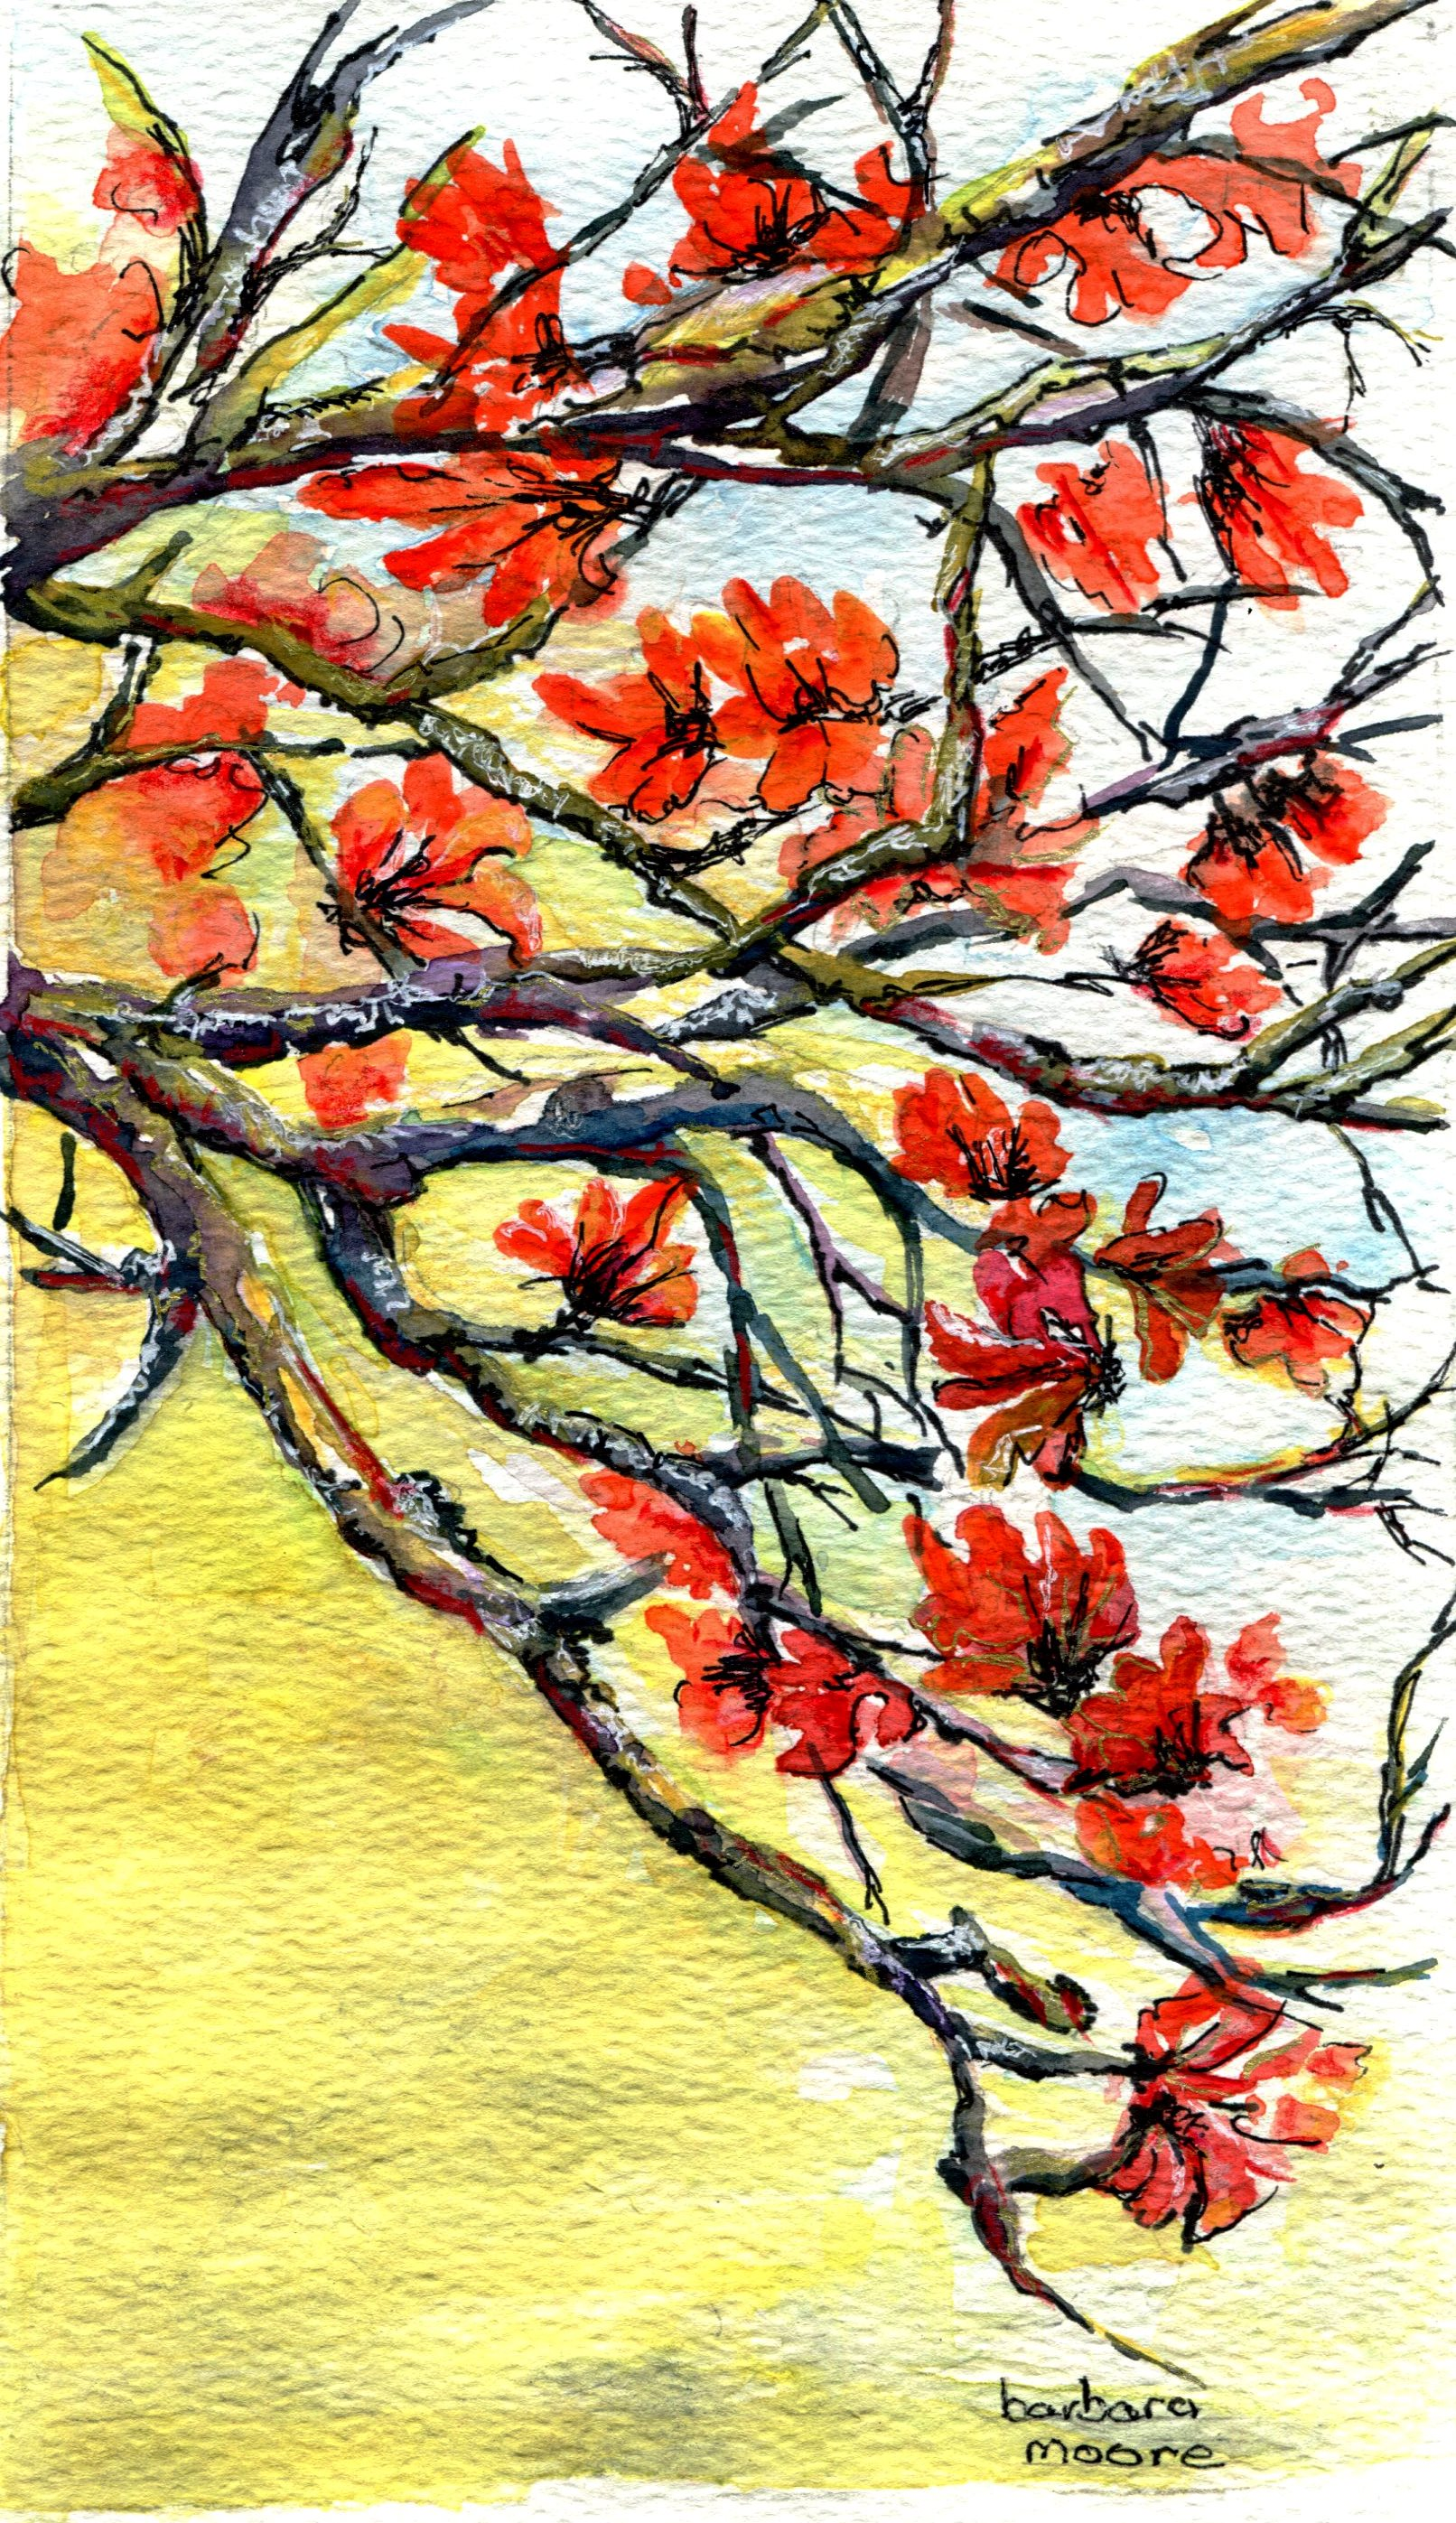 16C BARBARA MOORE, CORAL TREE, WATERCOLOUR ON PAPER